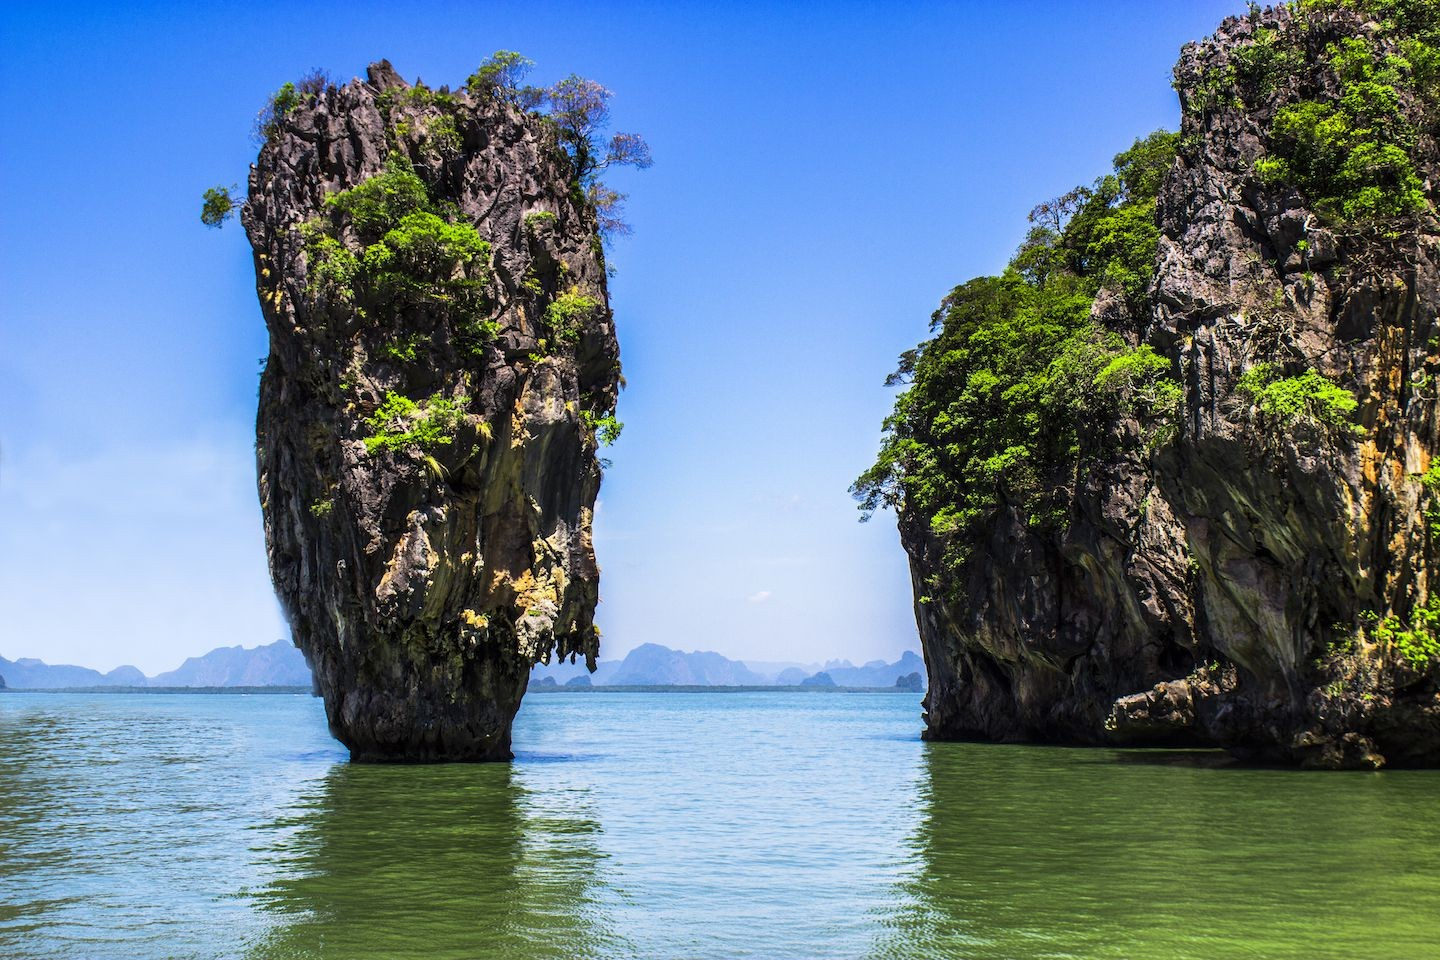 Geography Hd Wallpaper Thailand Thai Sea Sky Island Rock Water Wallpapers